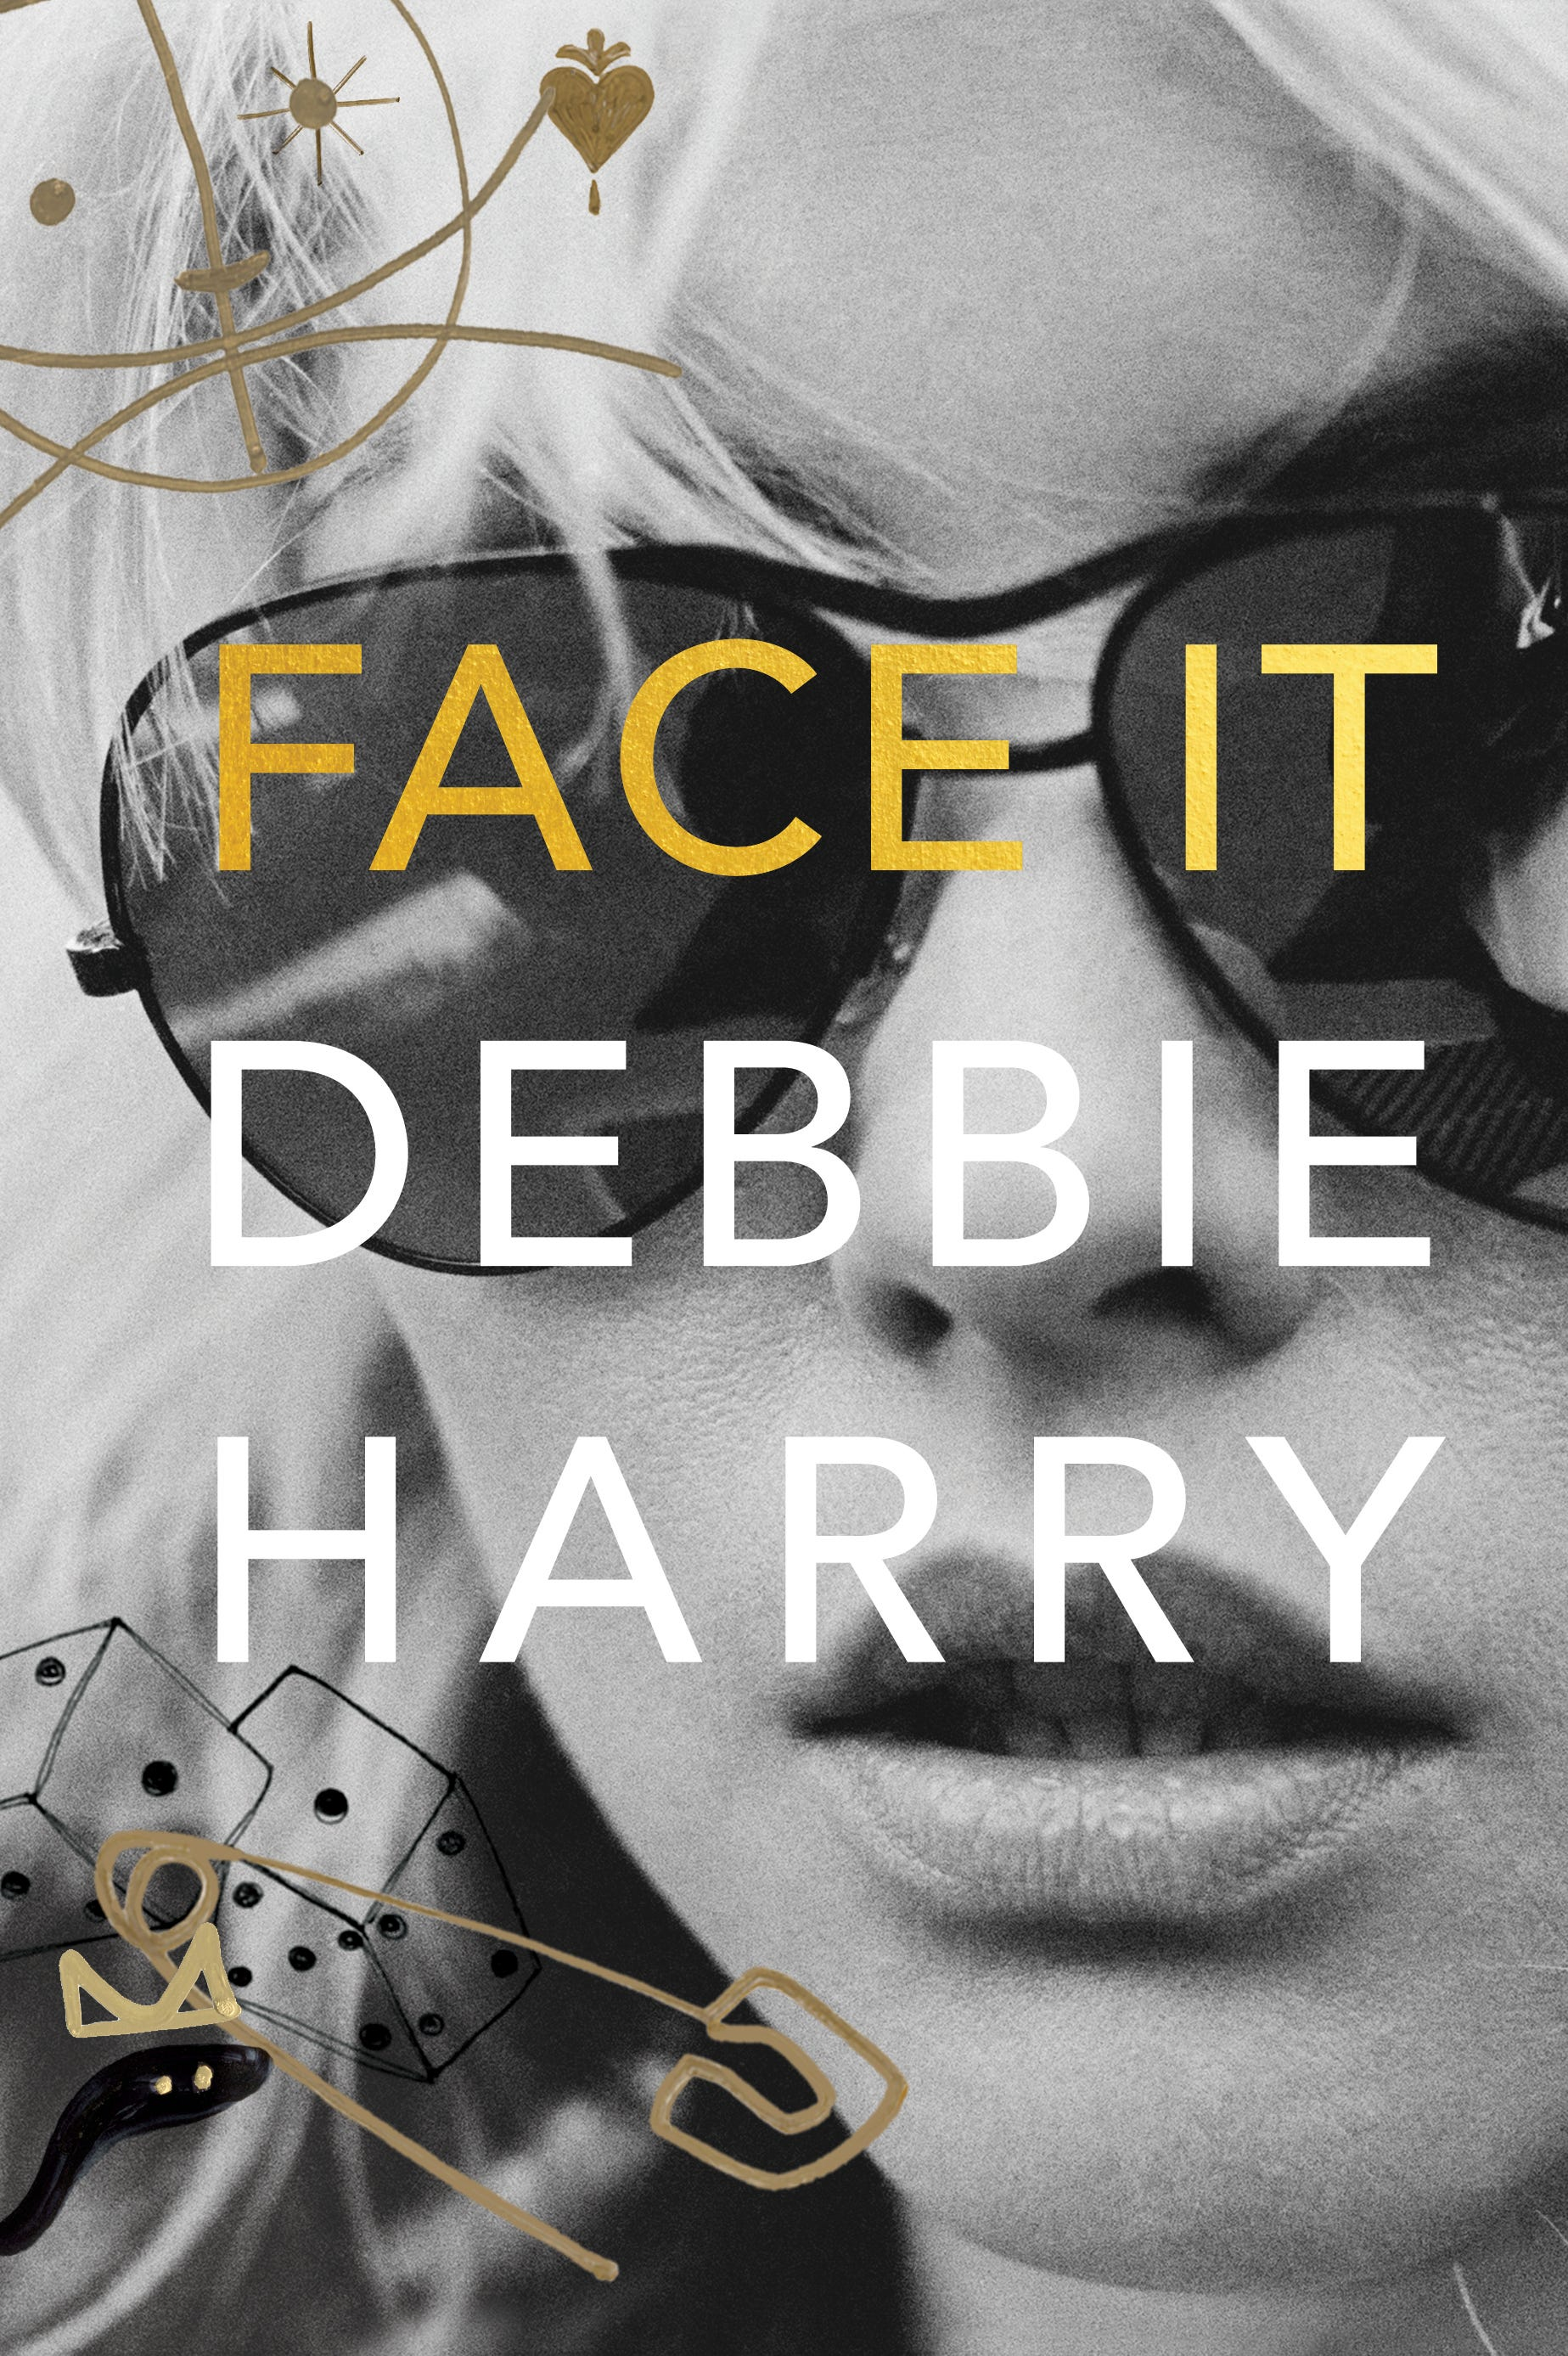 Book cover with black-and-white photo of Debbie Harry's face